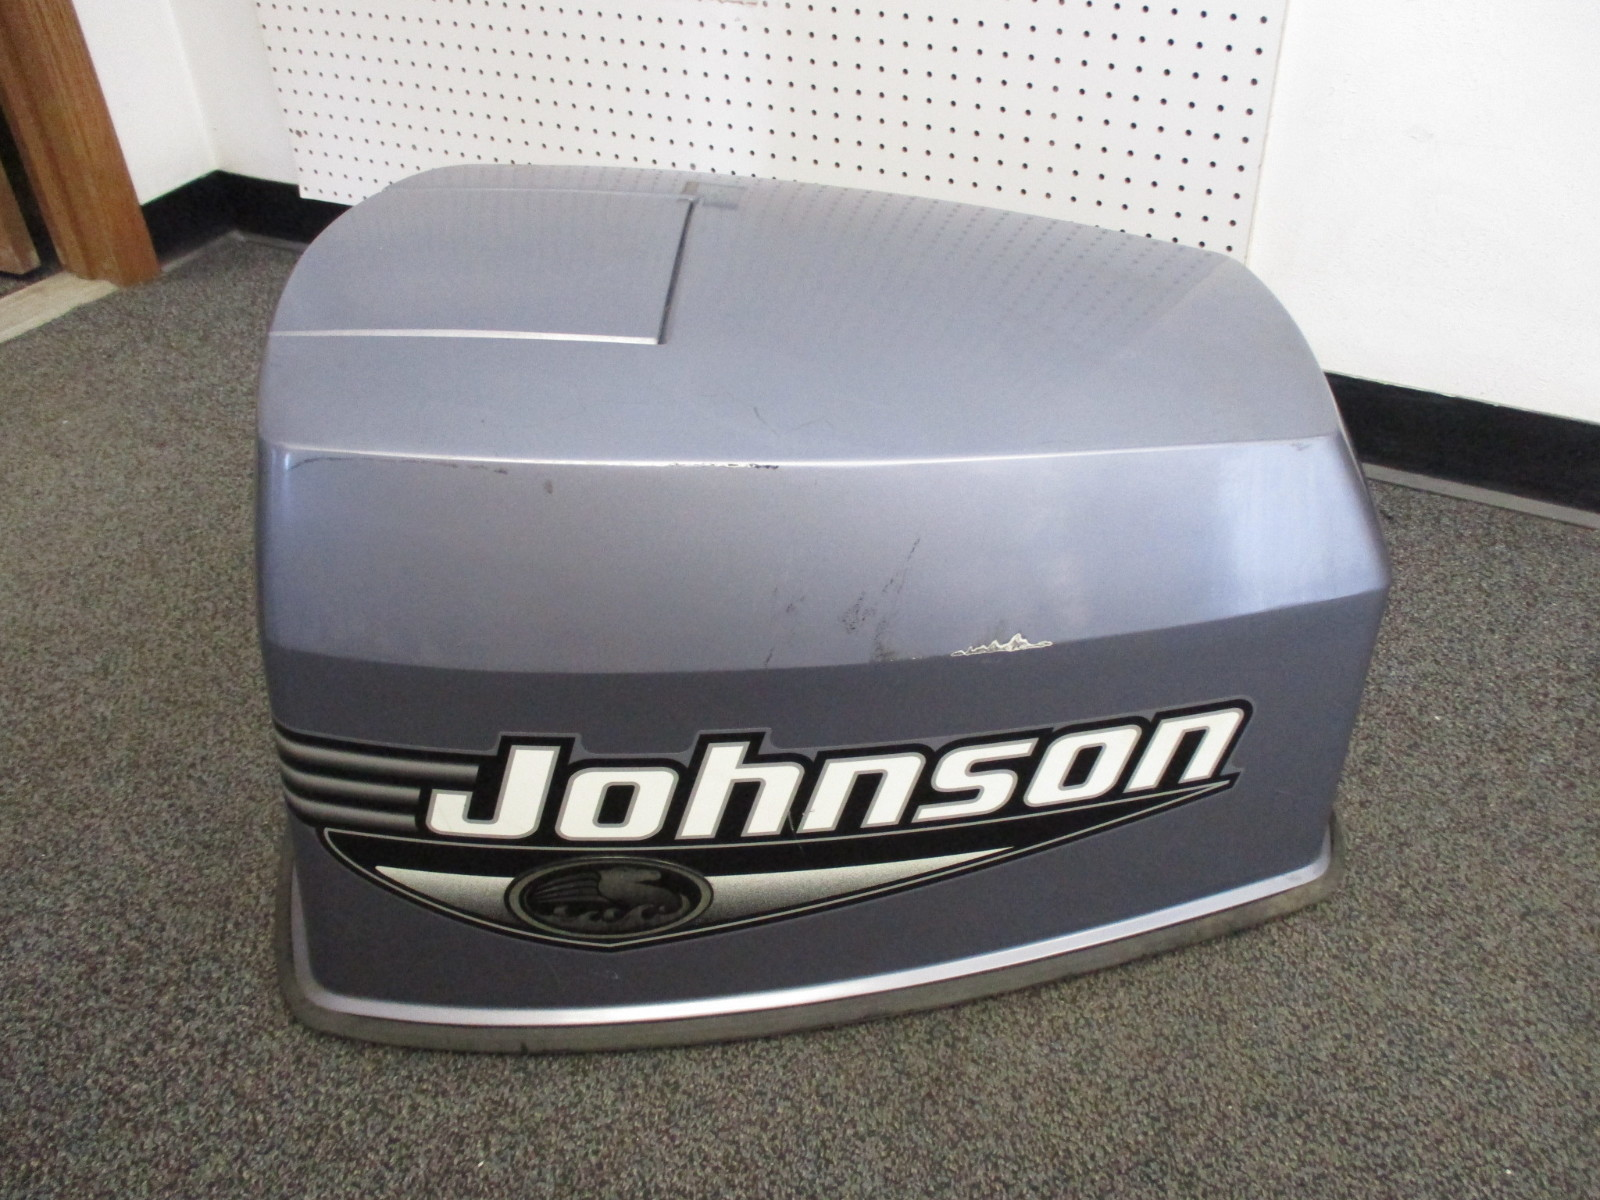 Evinrude Outboard Motor Covers xd 50